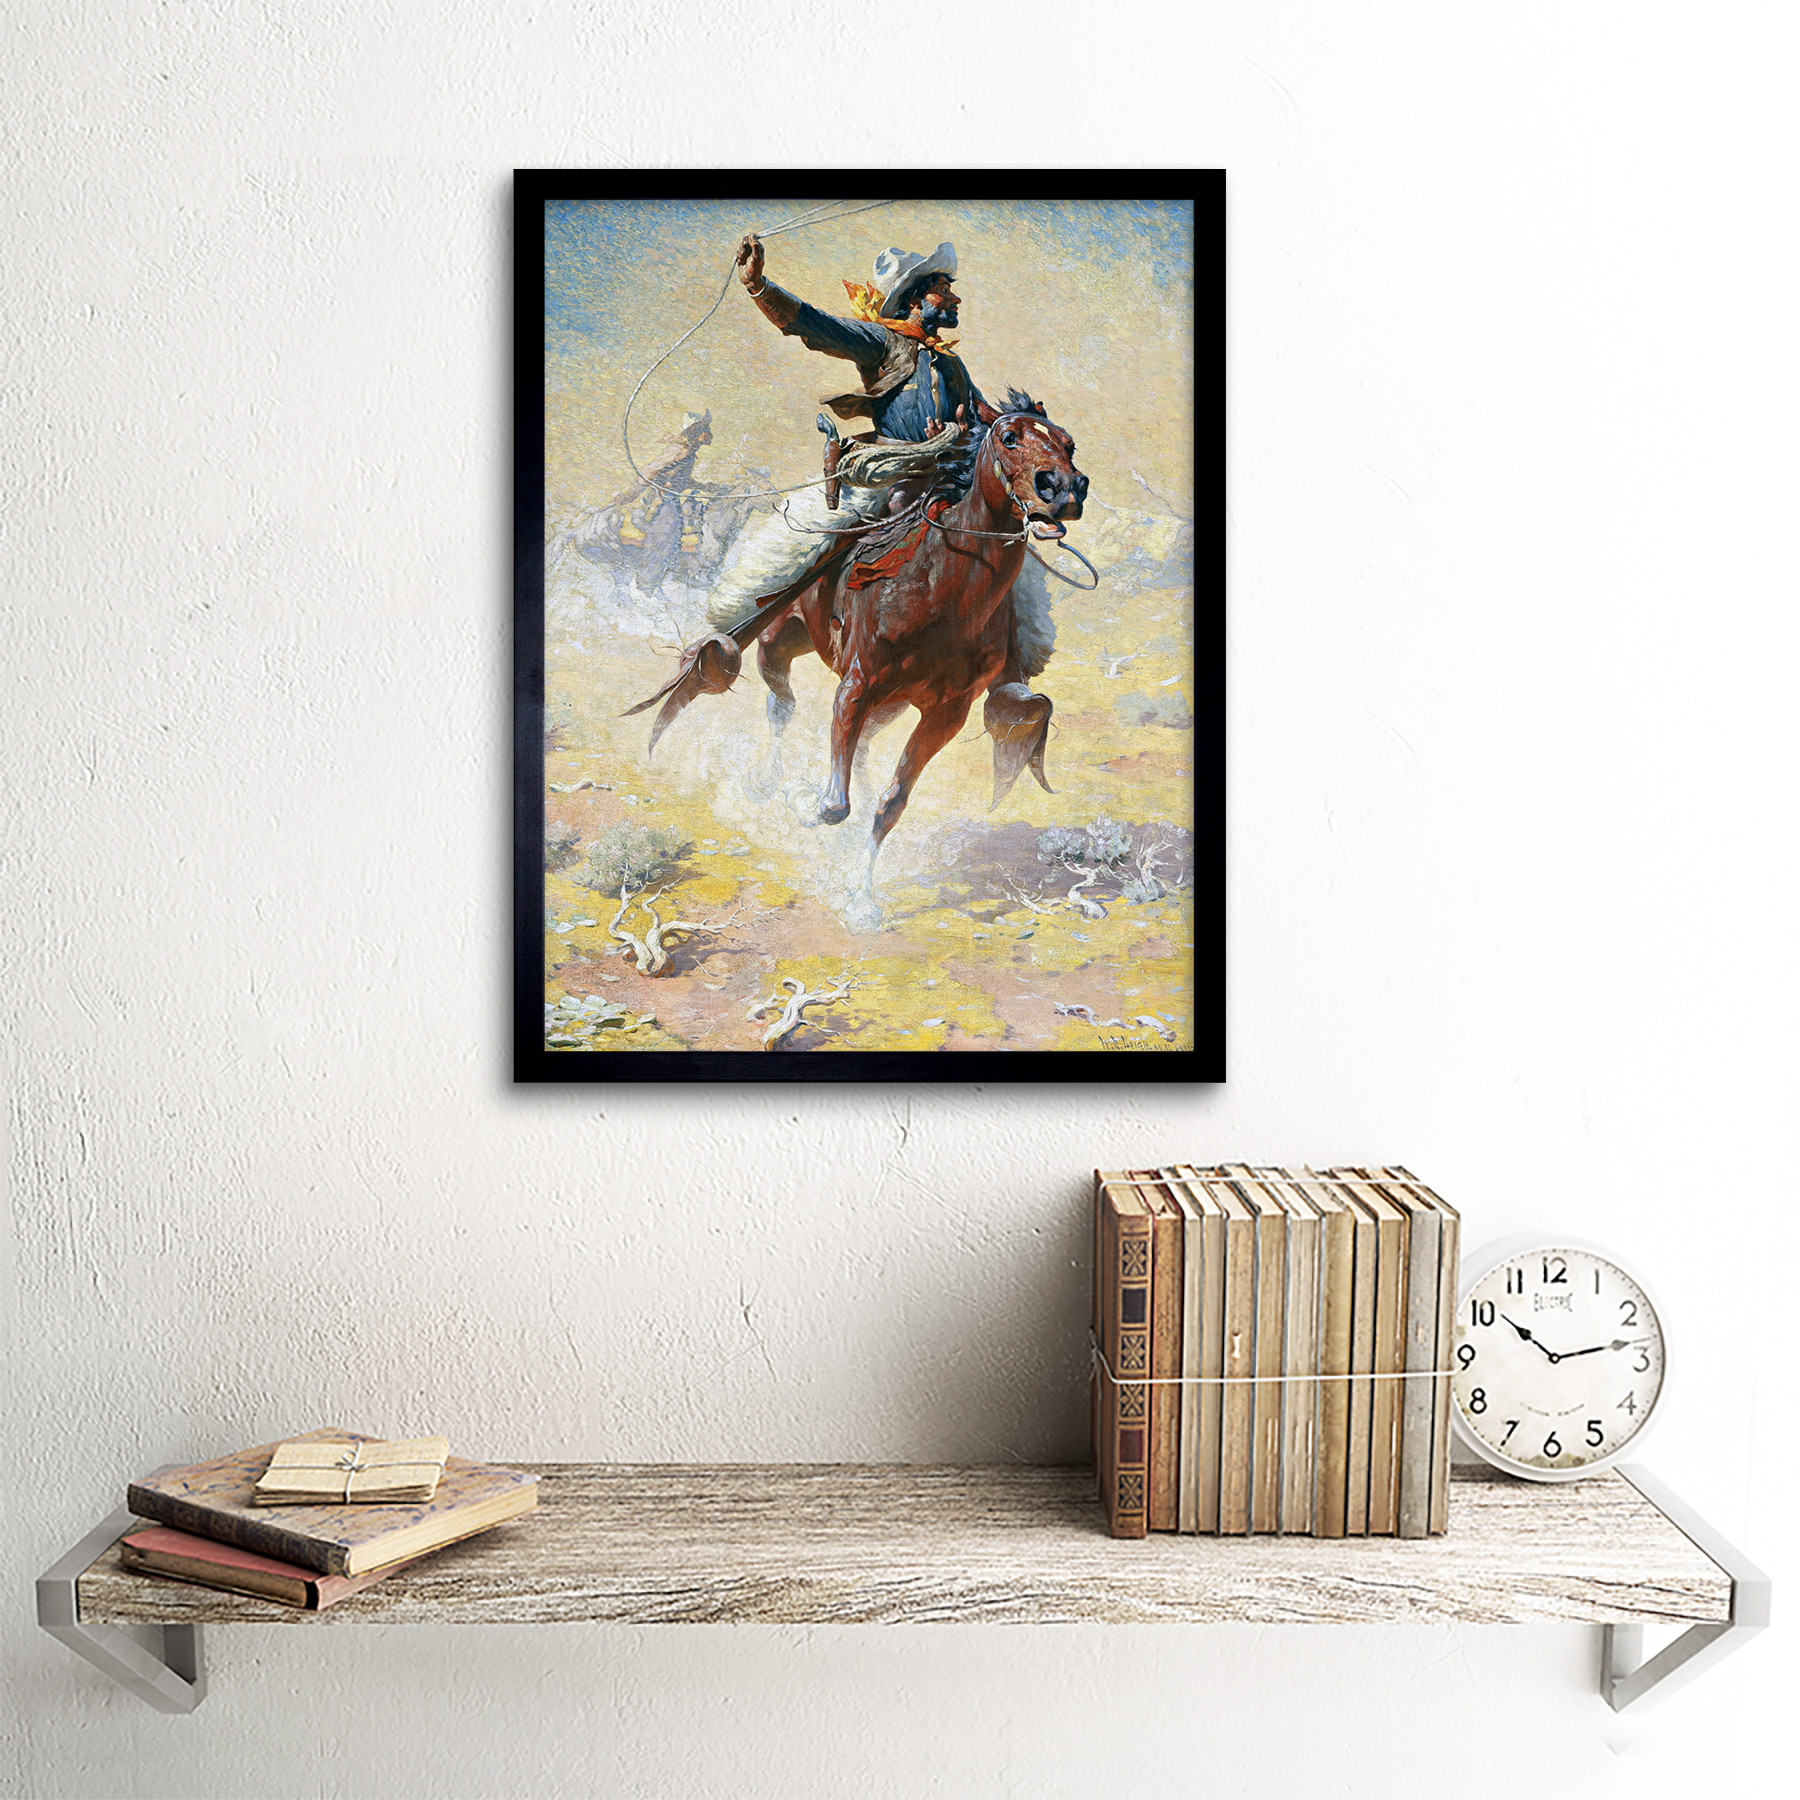 Leigh-The-Roping-Cowboy-Lasso-Horse-Painting-Art-Print-Framed-12x16 thumbnail 3